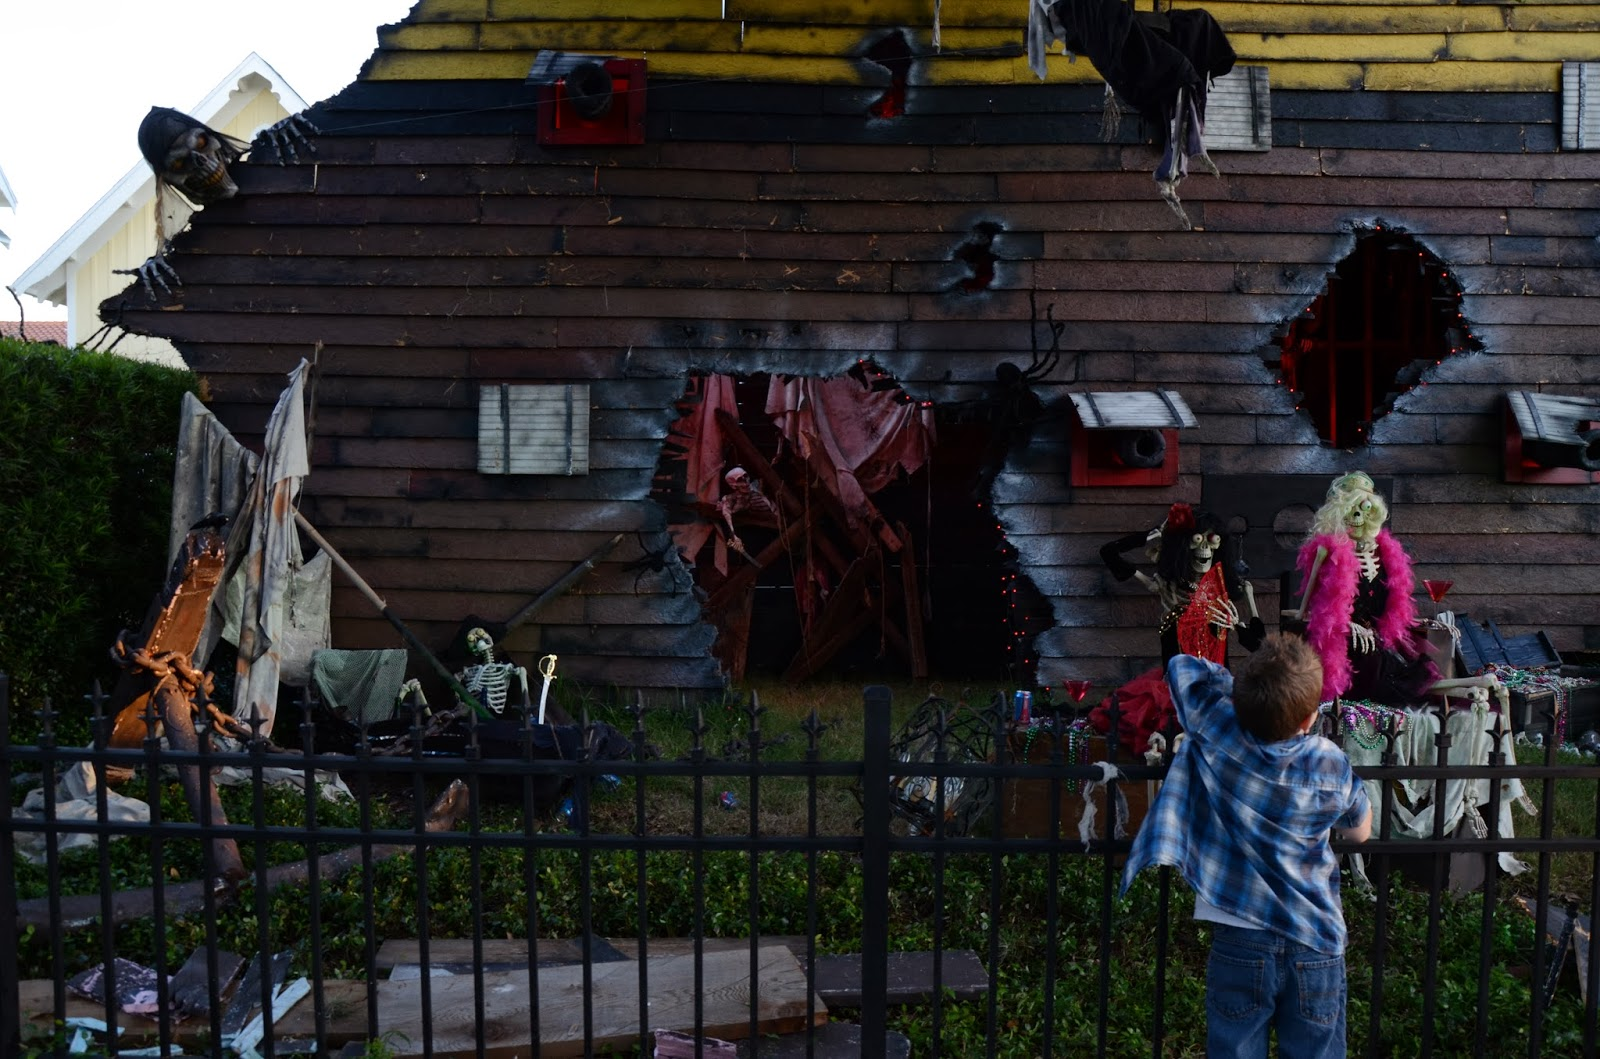 camelot art creations: over the top halloween house!!